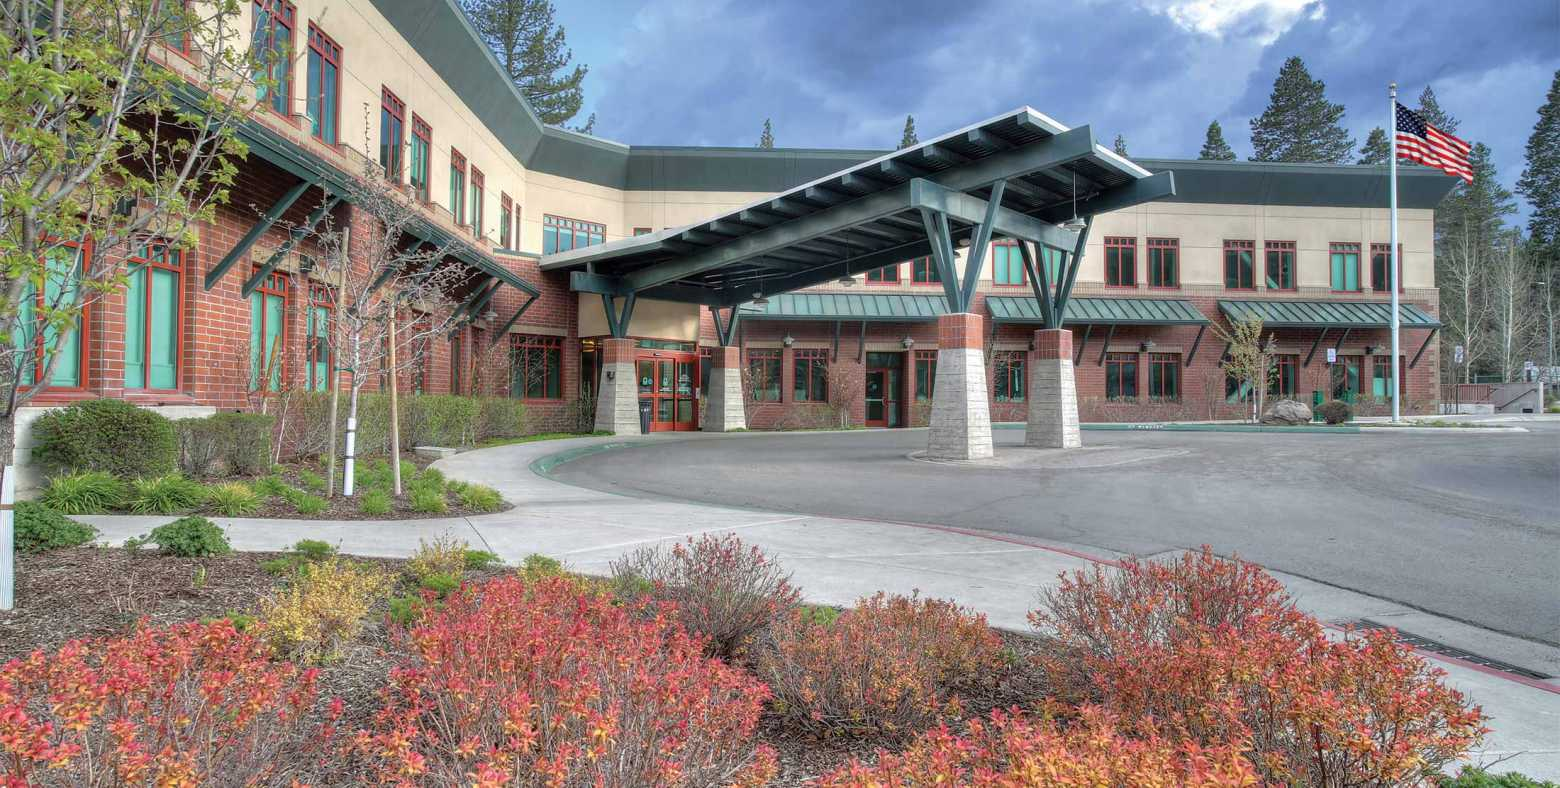 Tahoe Forest Hospital, Truckee CA